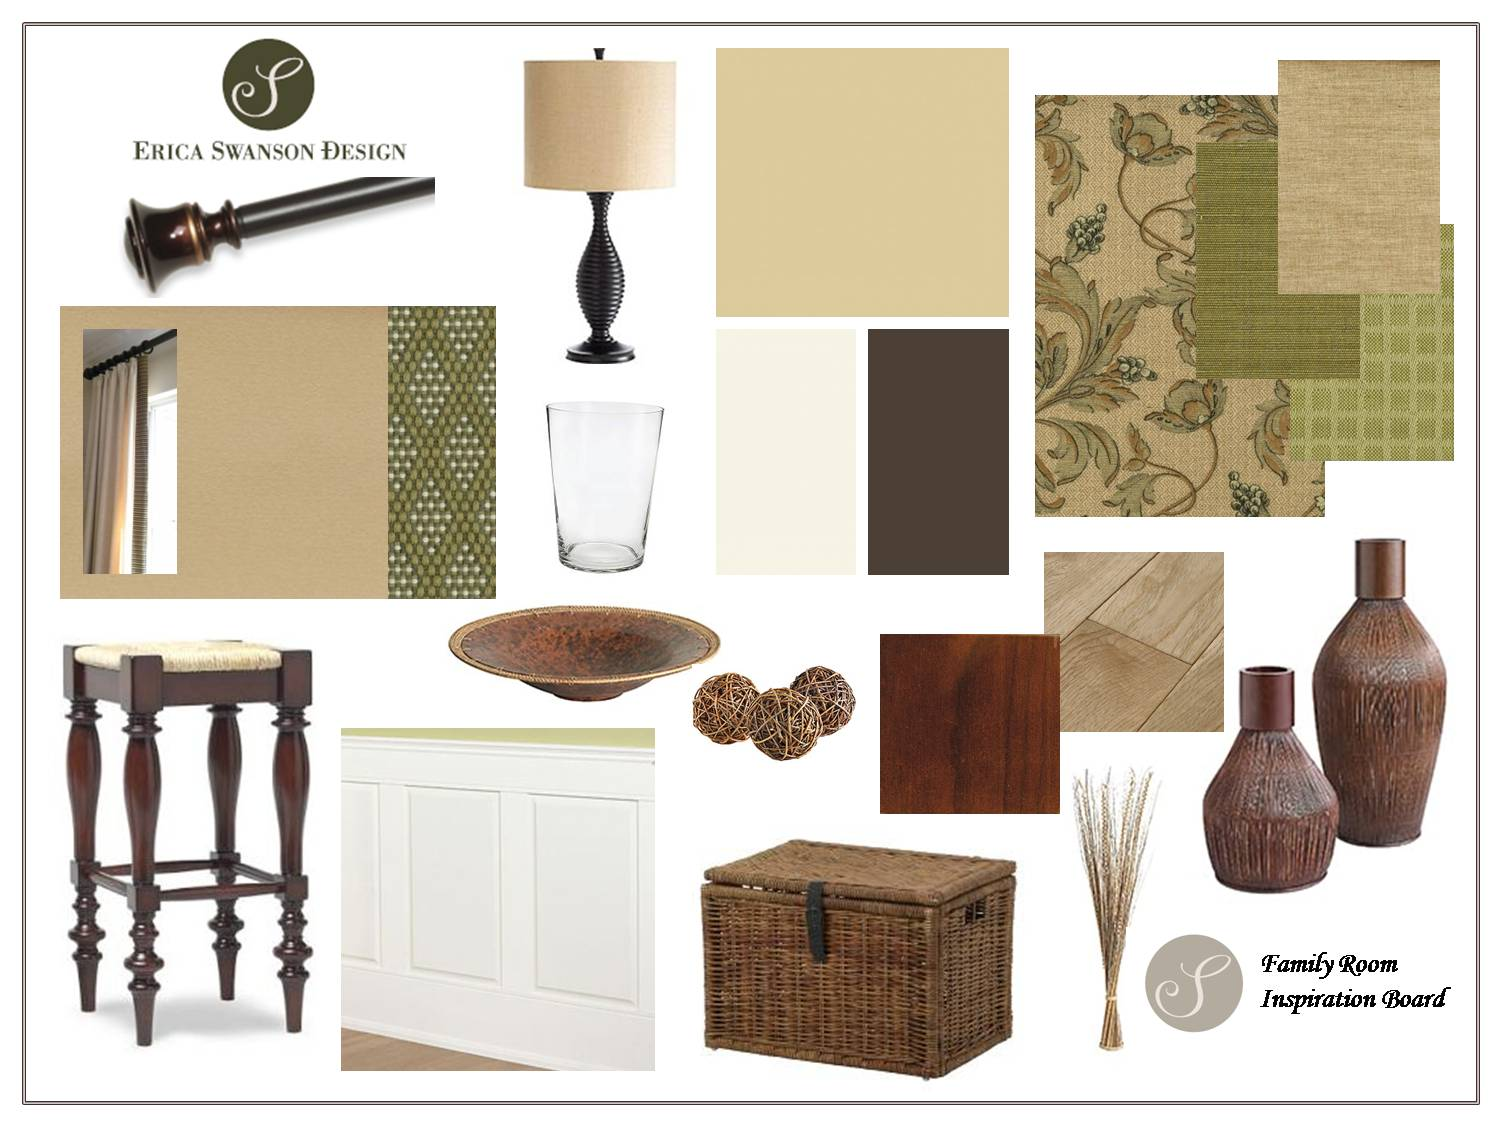 Inspiration Board - Family Room